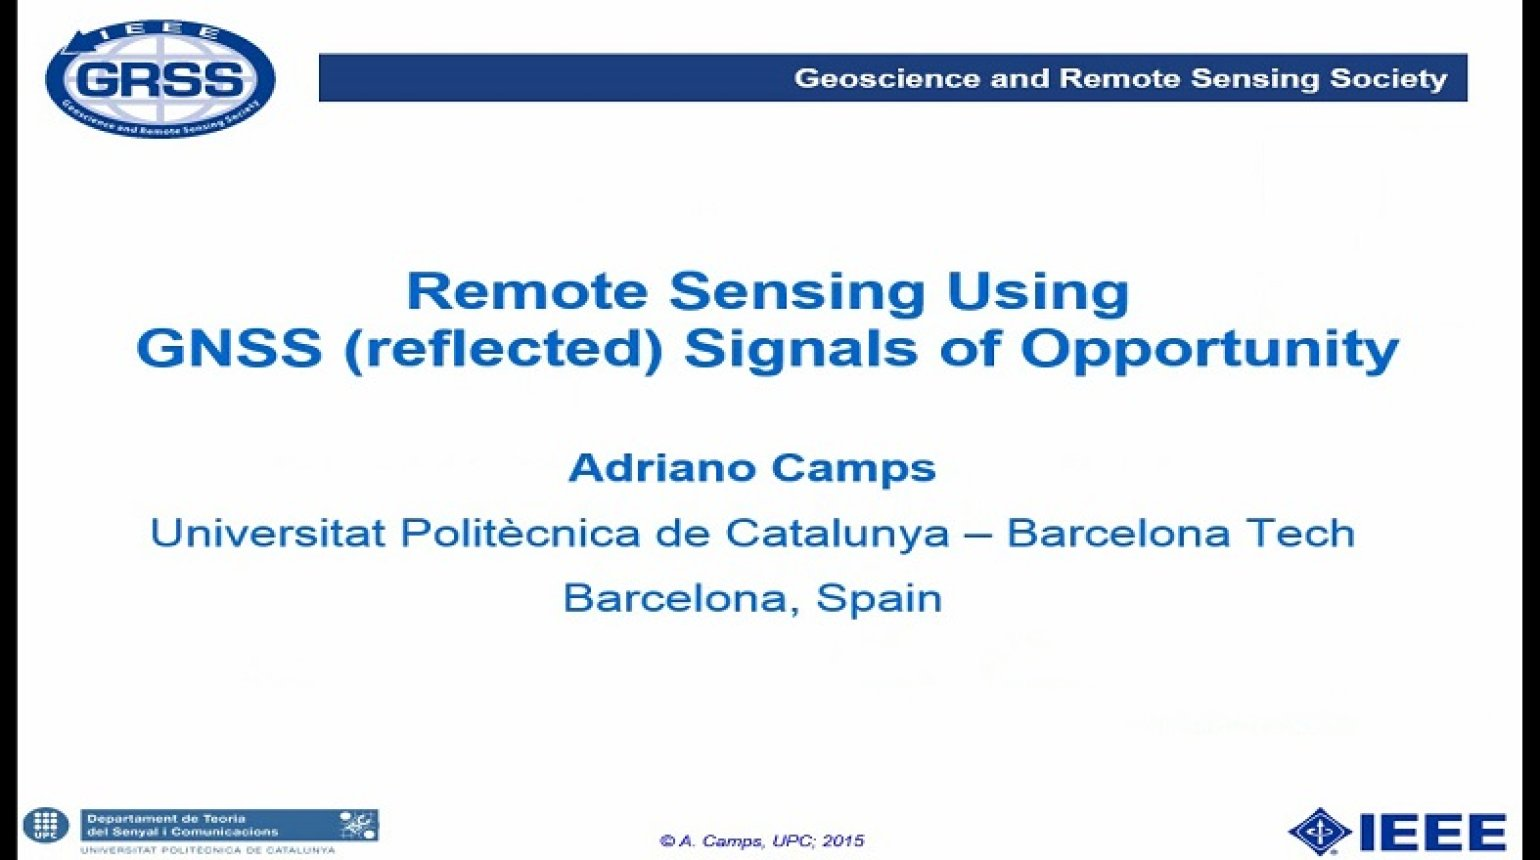 Remote Sensing Using GNSS (reflected) Signals of Opportunity